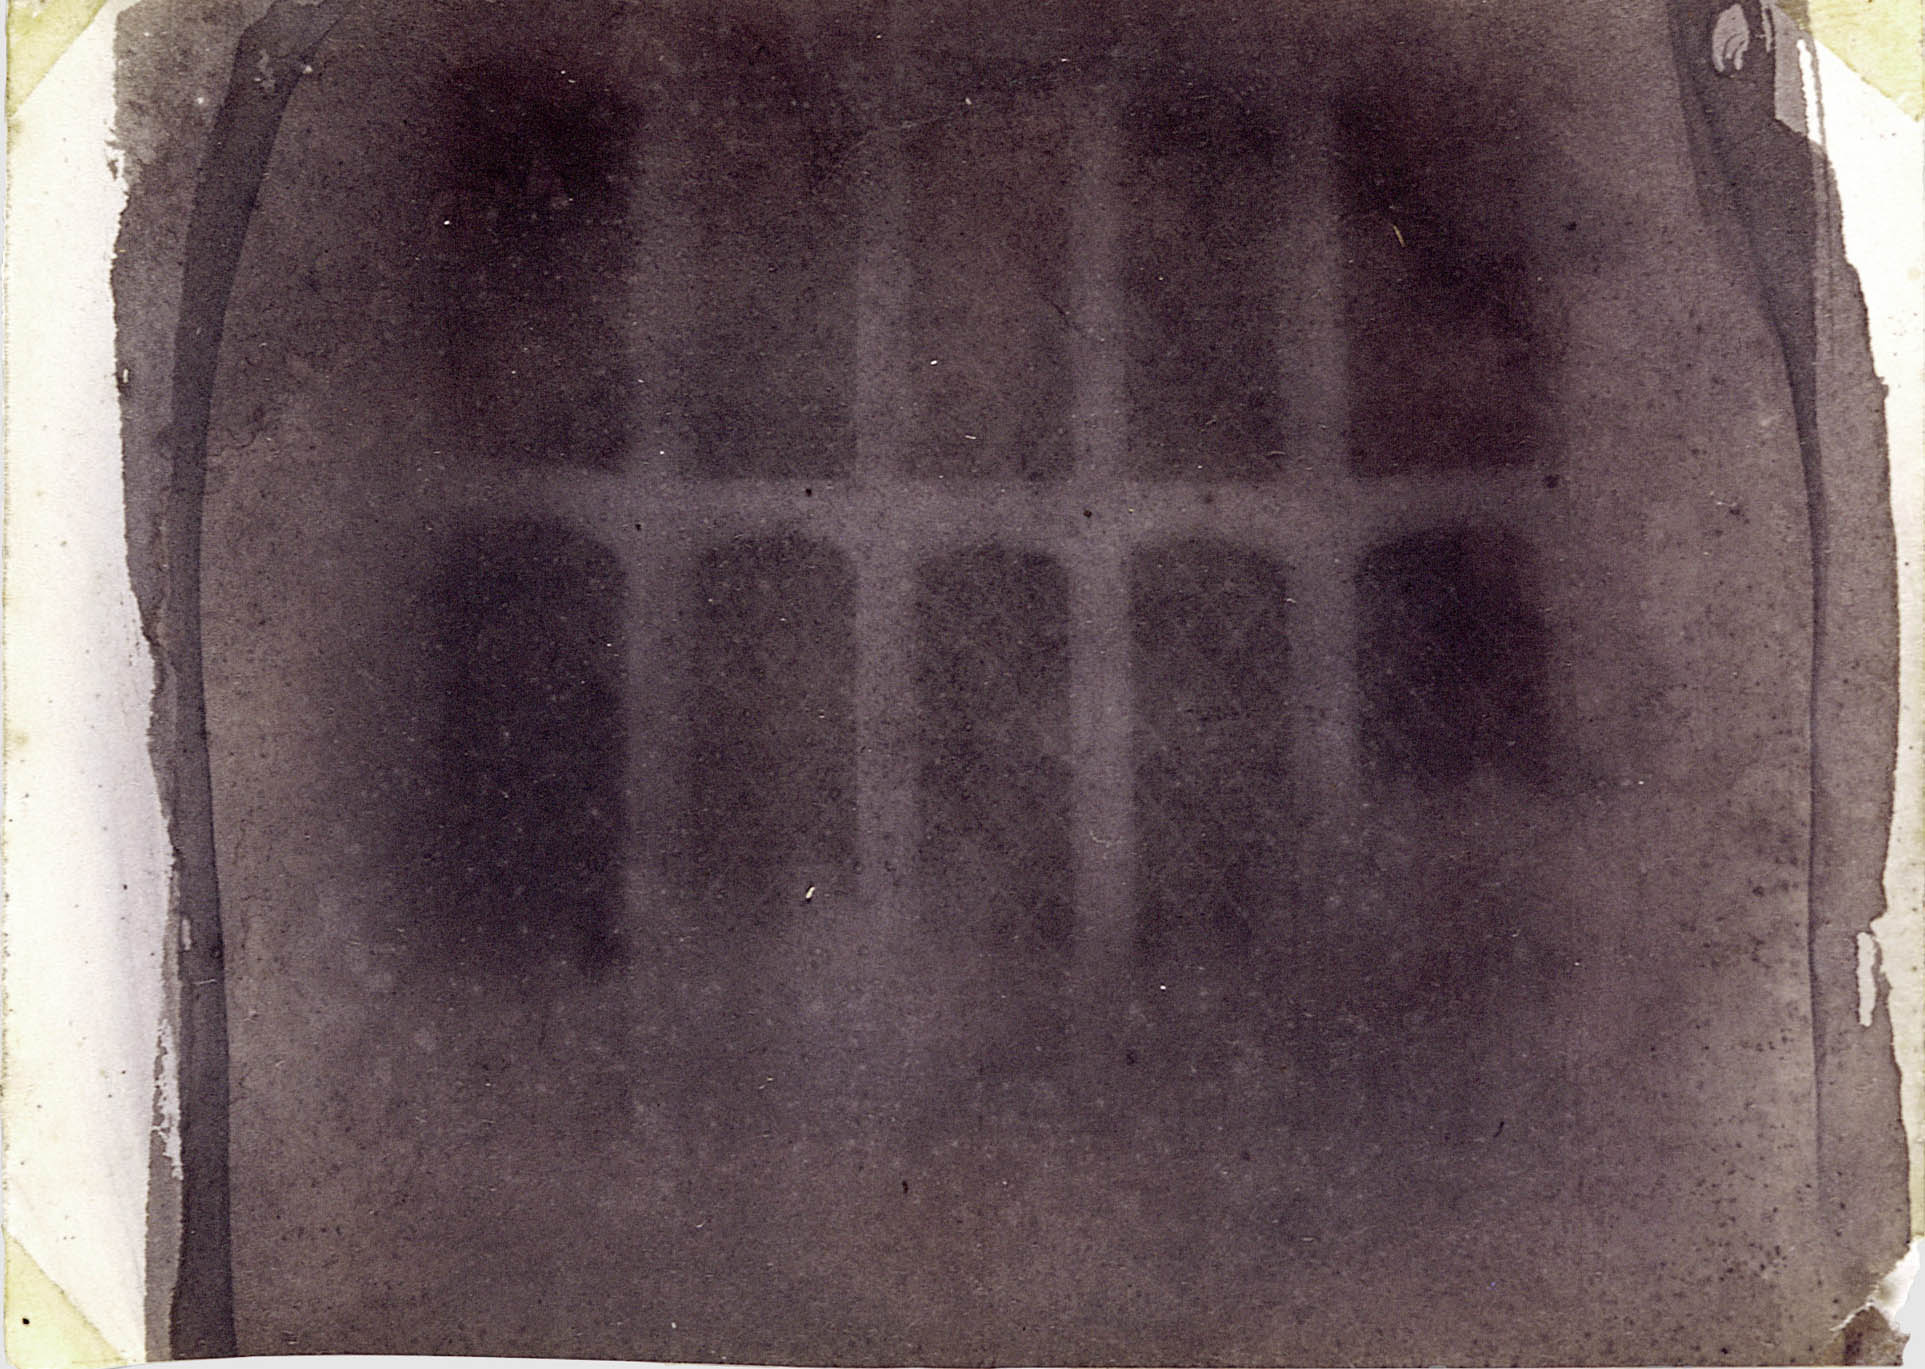 William Henry Fox Talbot, Window in the South Gallery of Lacock Abbey made from the oldest photographic negative in existence, 1835. Public Domain.